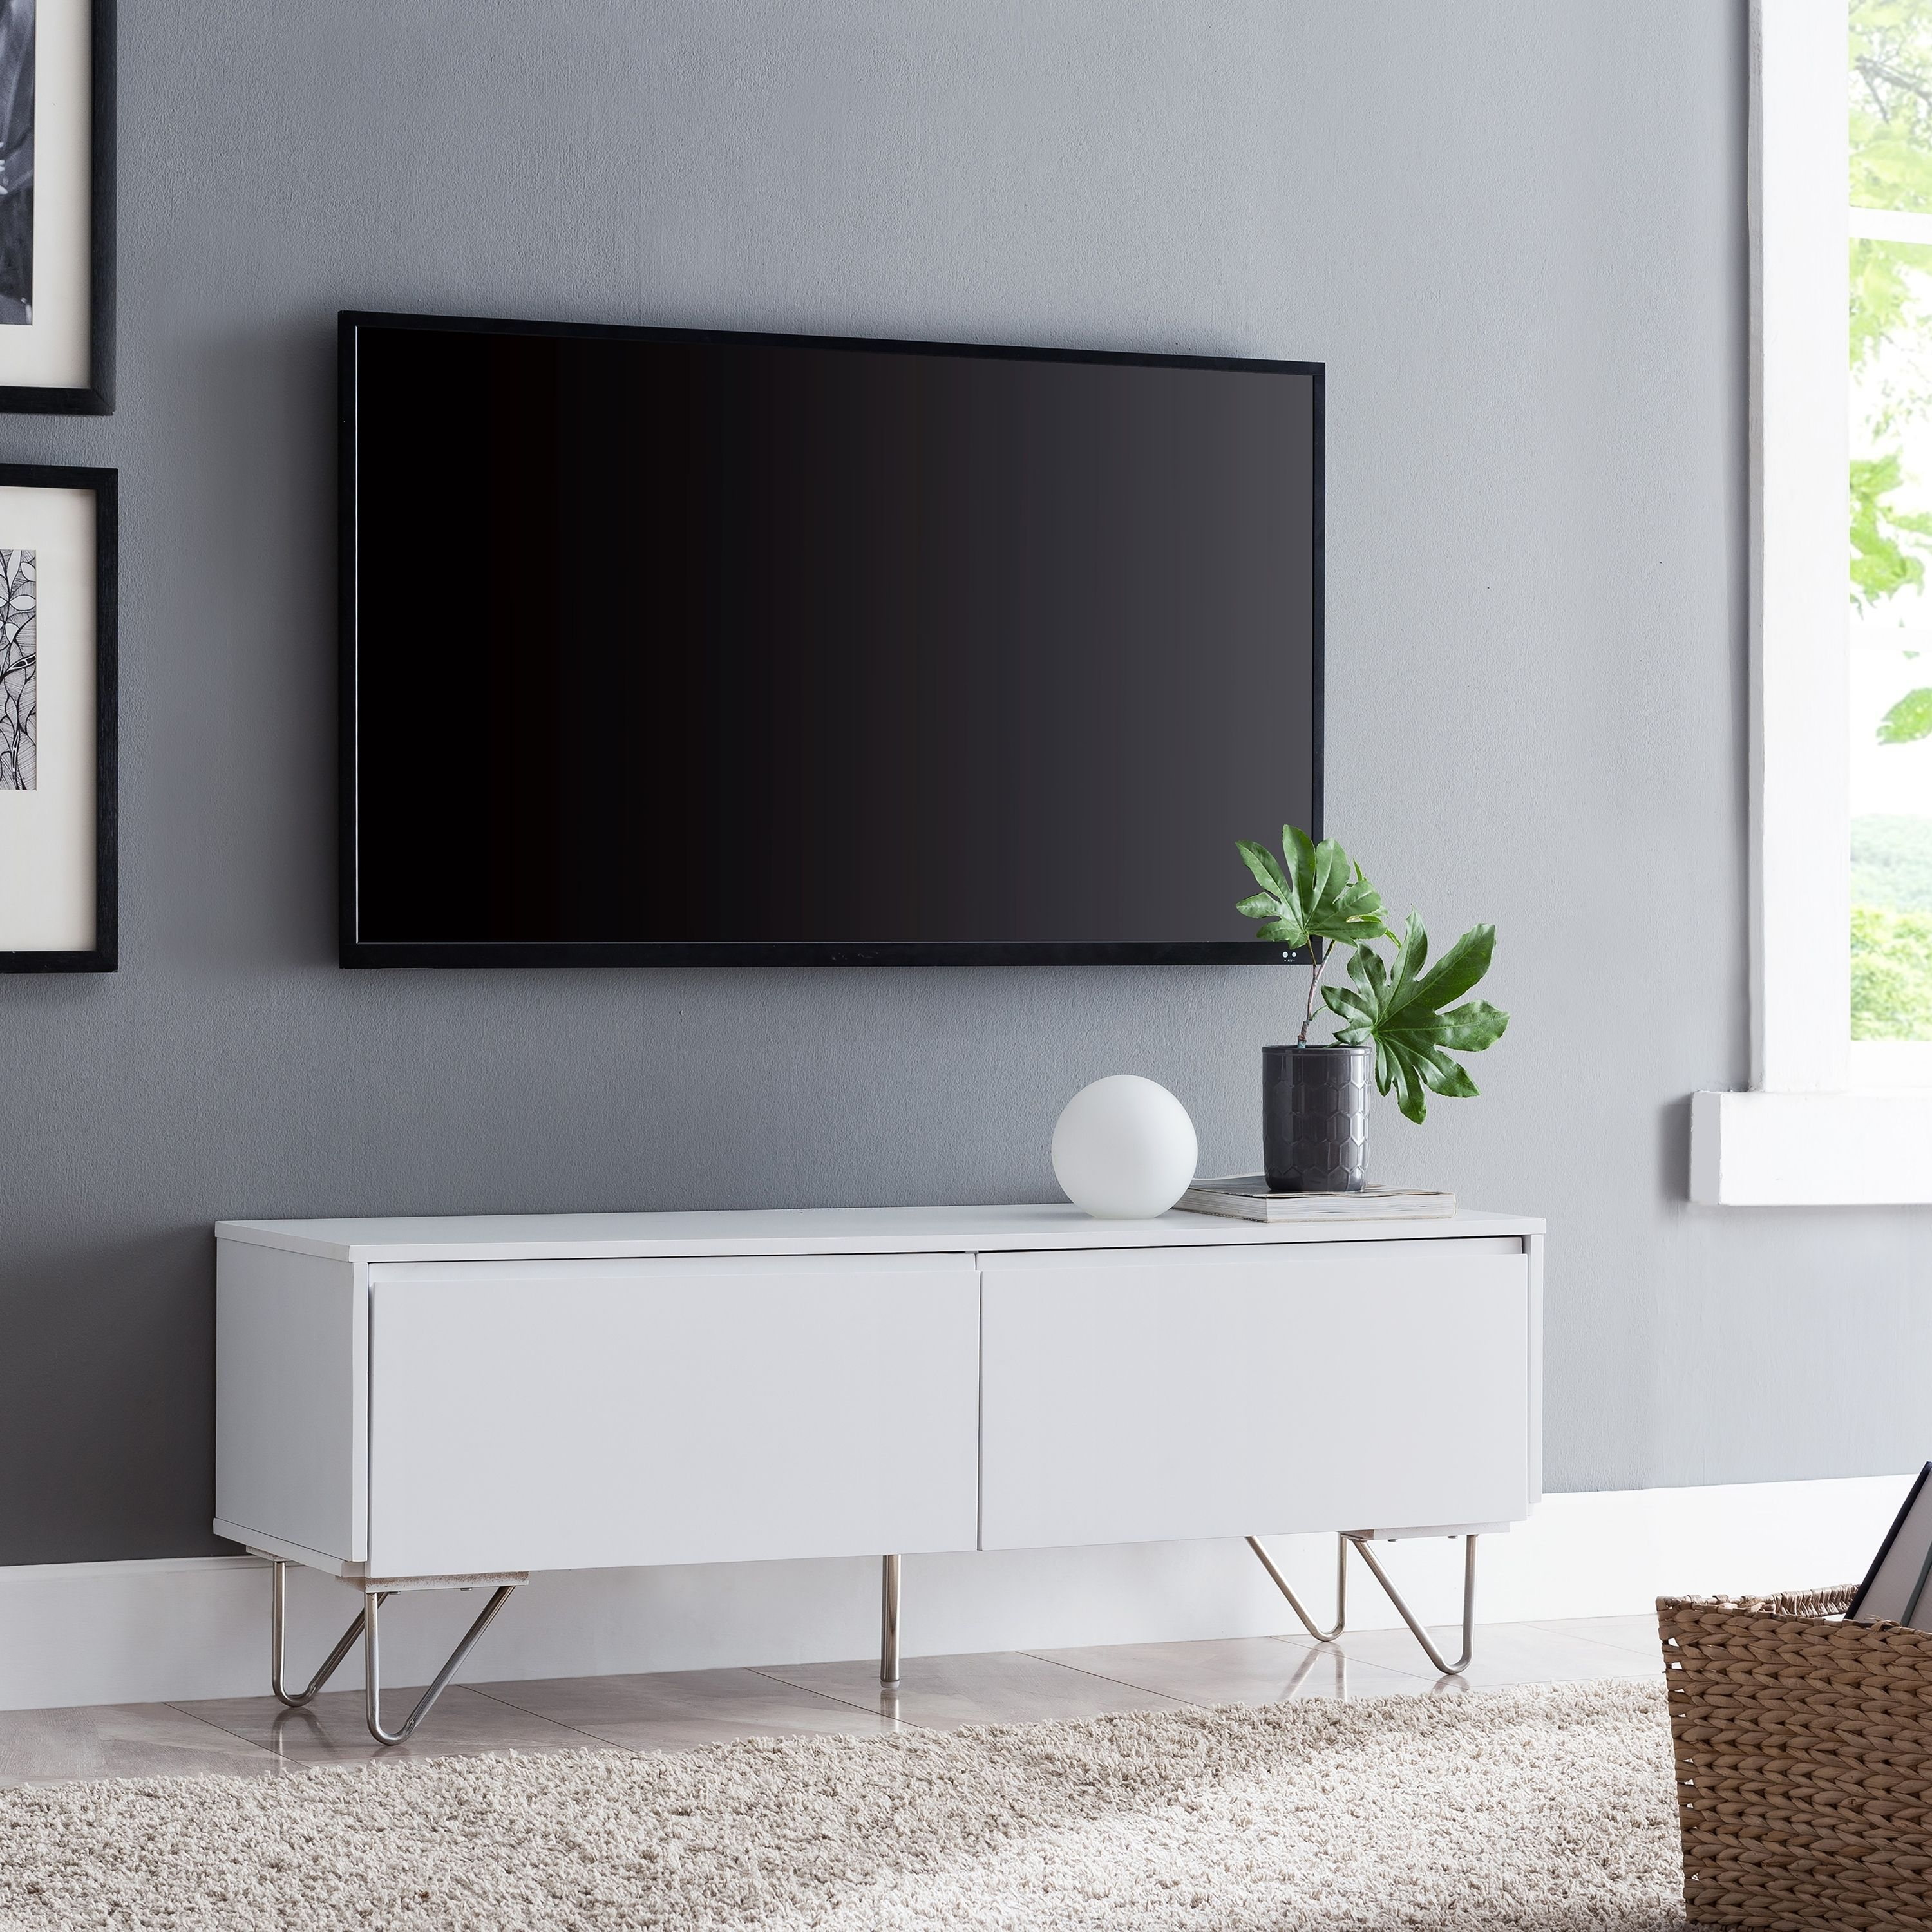 Buy Tv Stands Entertainment Centers Online At Overstock Our Best Living Room Fu Living Room Entertainment Center Tv Stand With Storage Entertainment Center